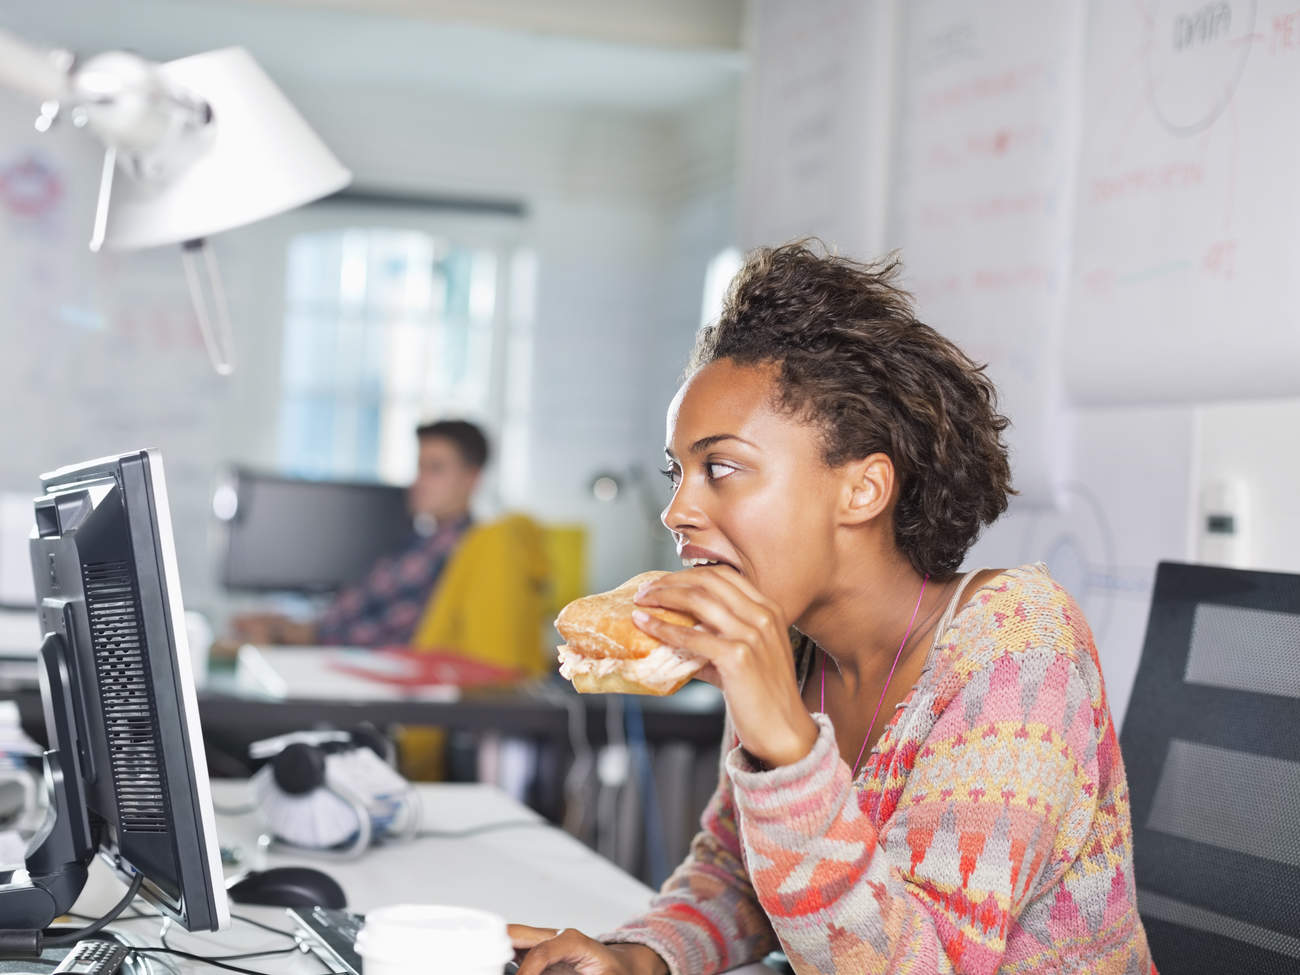 hungry-office-eating-stress-burger-unhealthy-food